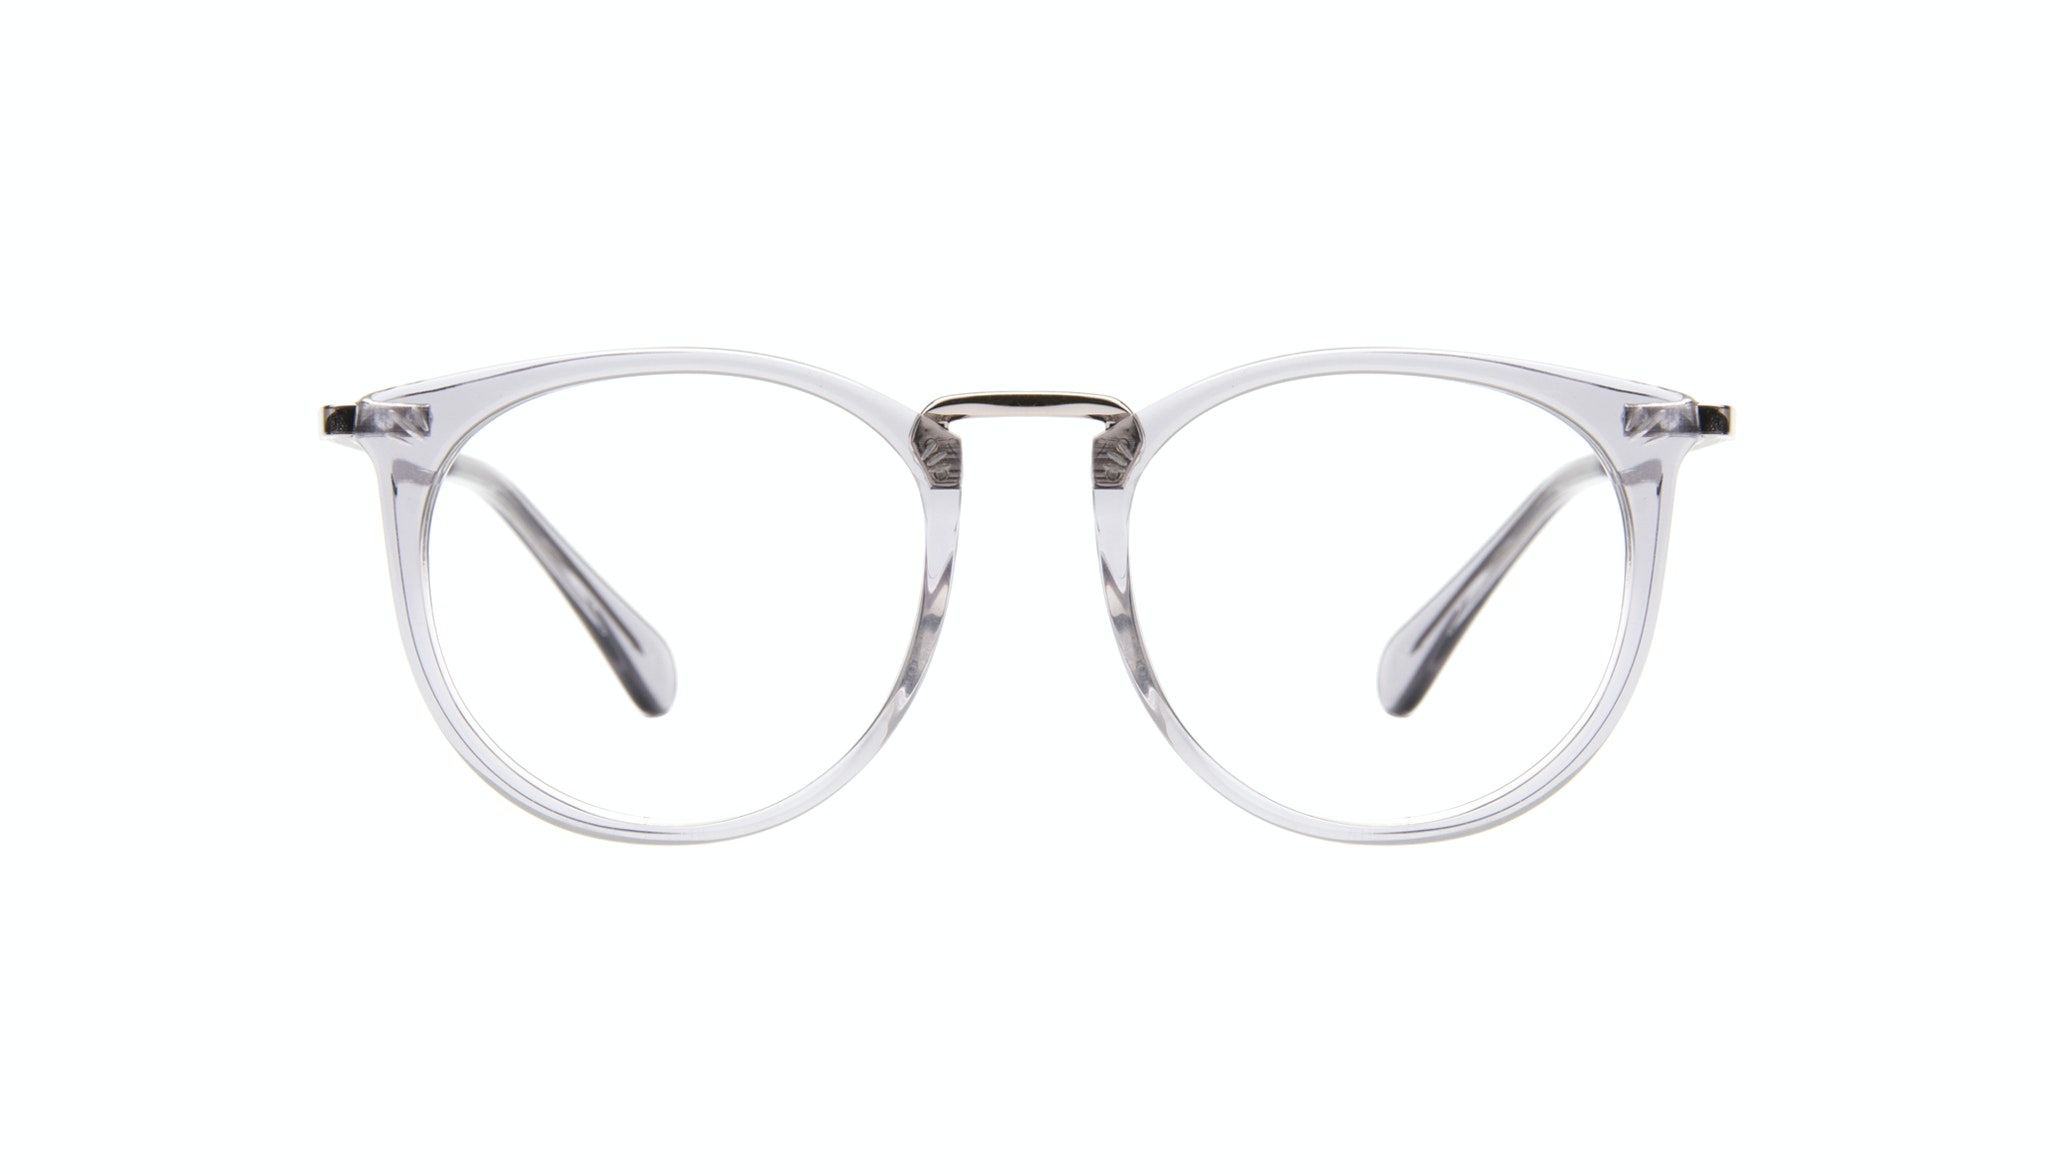 Affordable Fashion Glasses Round Eyeglasses Women Wish grey